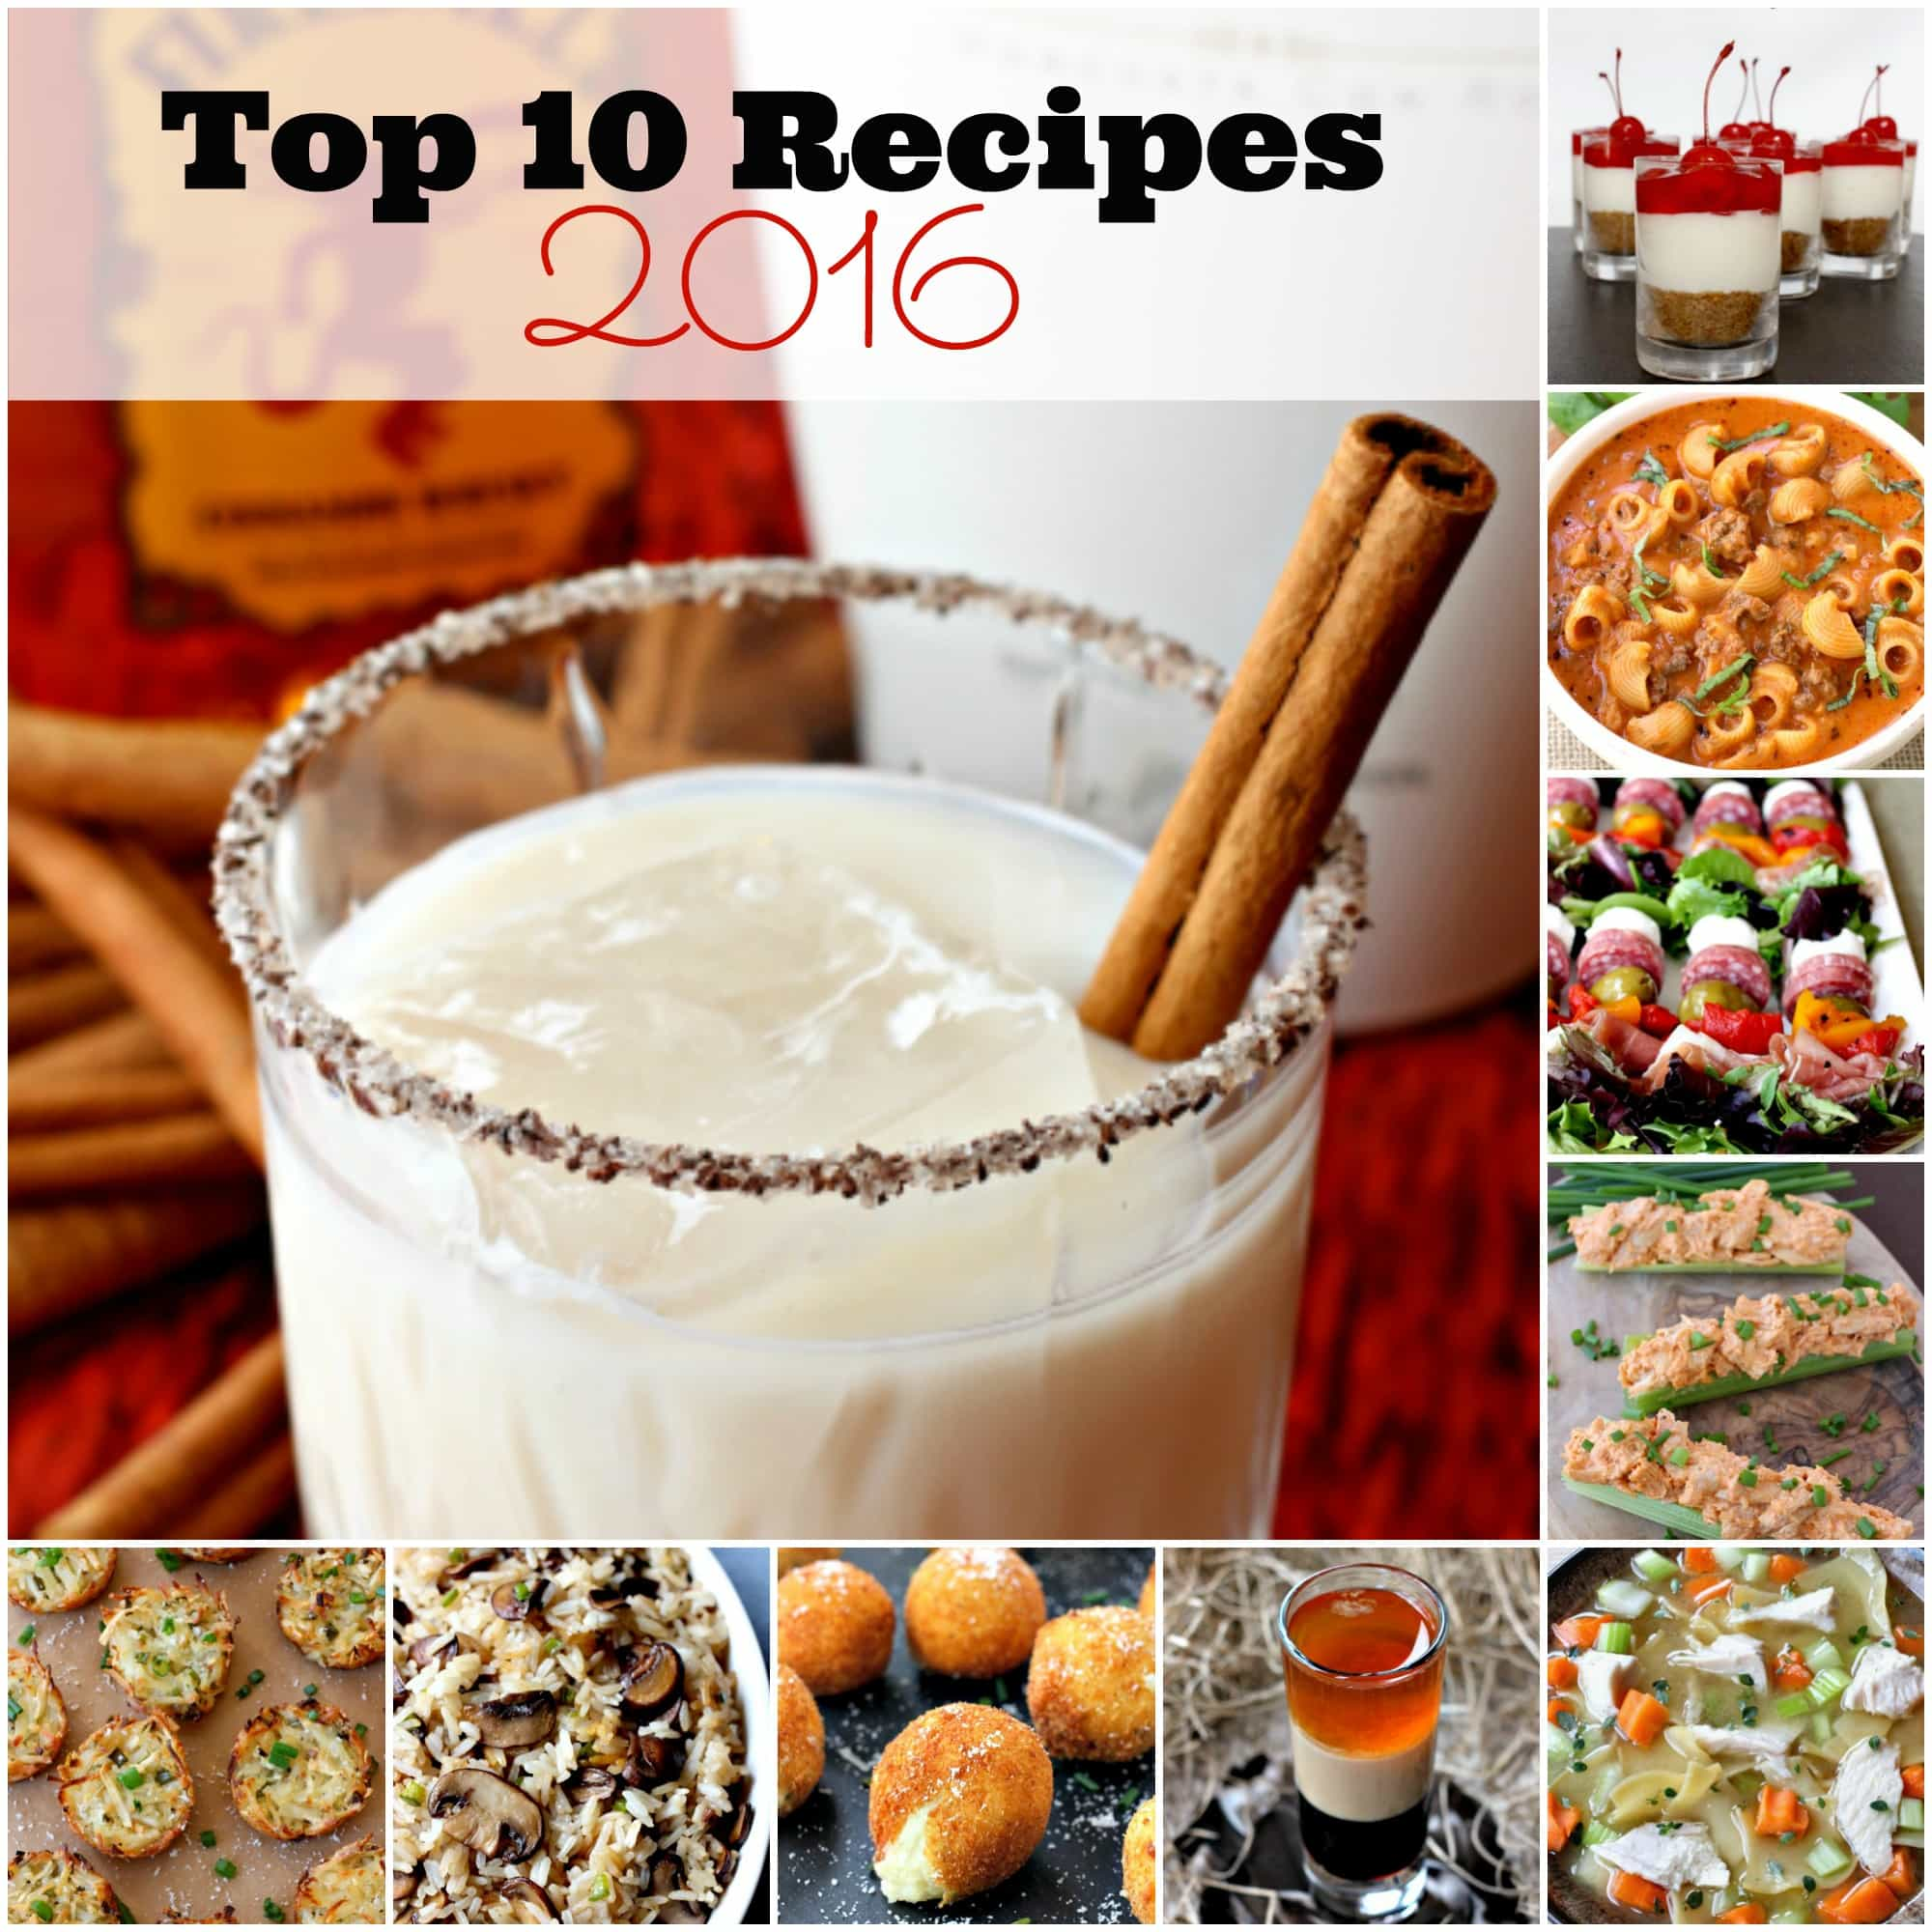 Top 10 Recipes of 2016 from Mantitlement